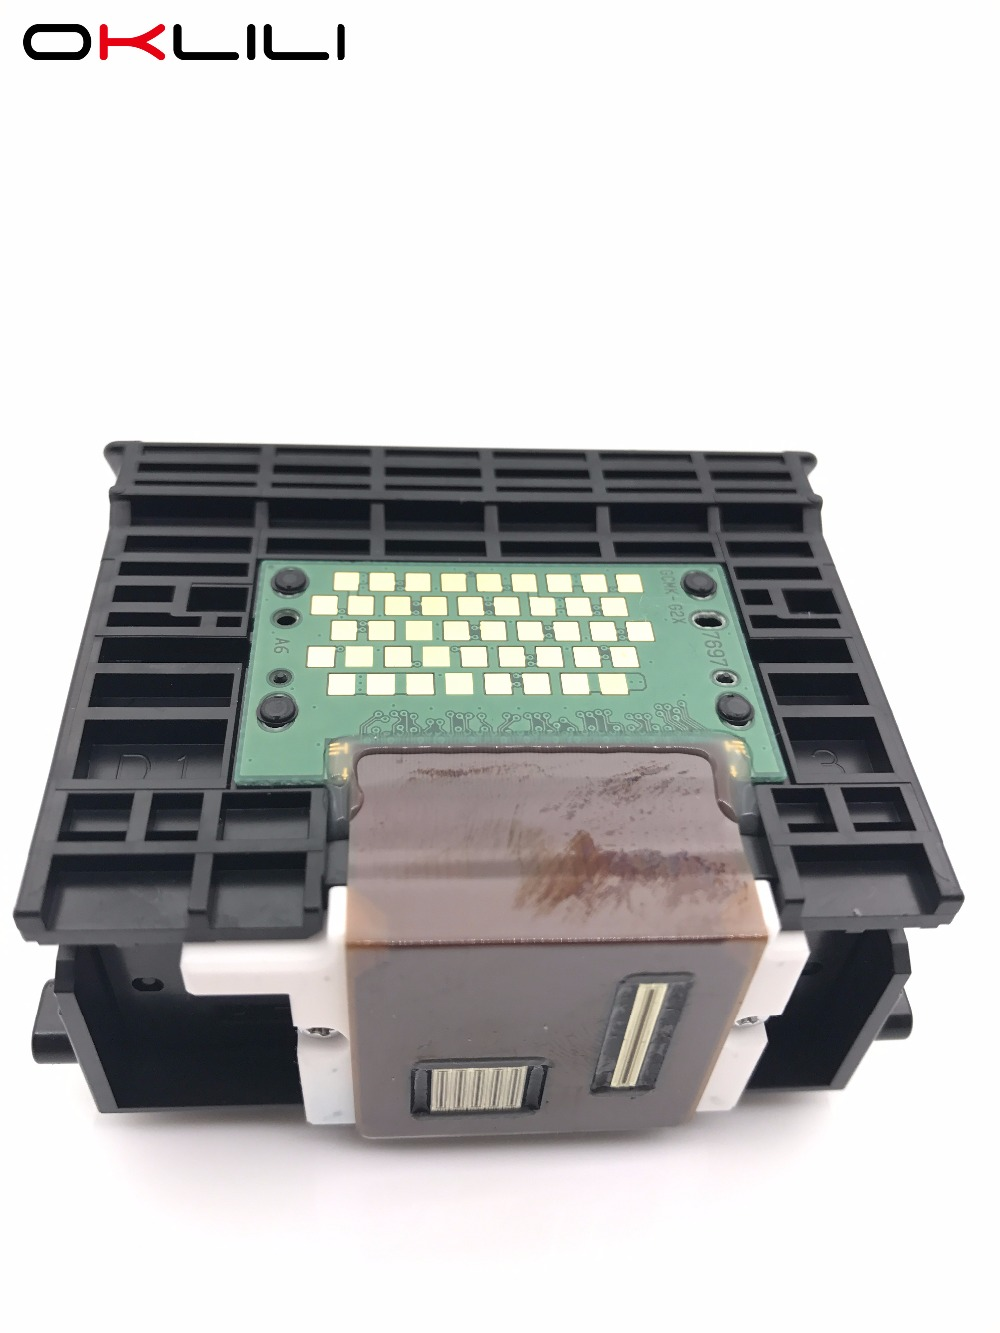 OKLILI ORIGINAL QY6-0070 QY6-0070-000 Printhead Print Head Printer Head for Canon MP510 MP520 MX700 iP3300 iP3500 genuine brand new qy6 0070 printhead print head for canon mp510 mp520 mx700 ip3300 ip3500 printer